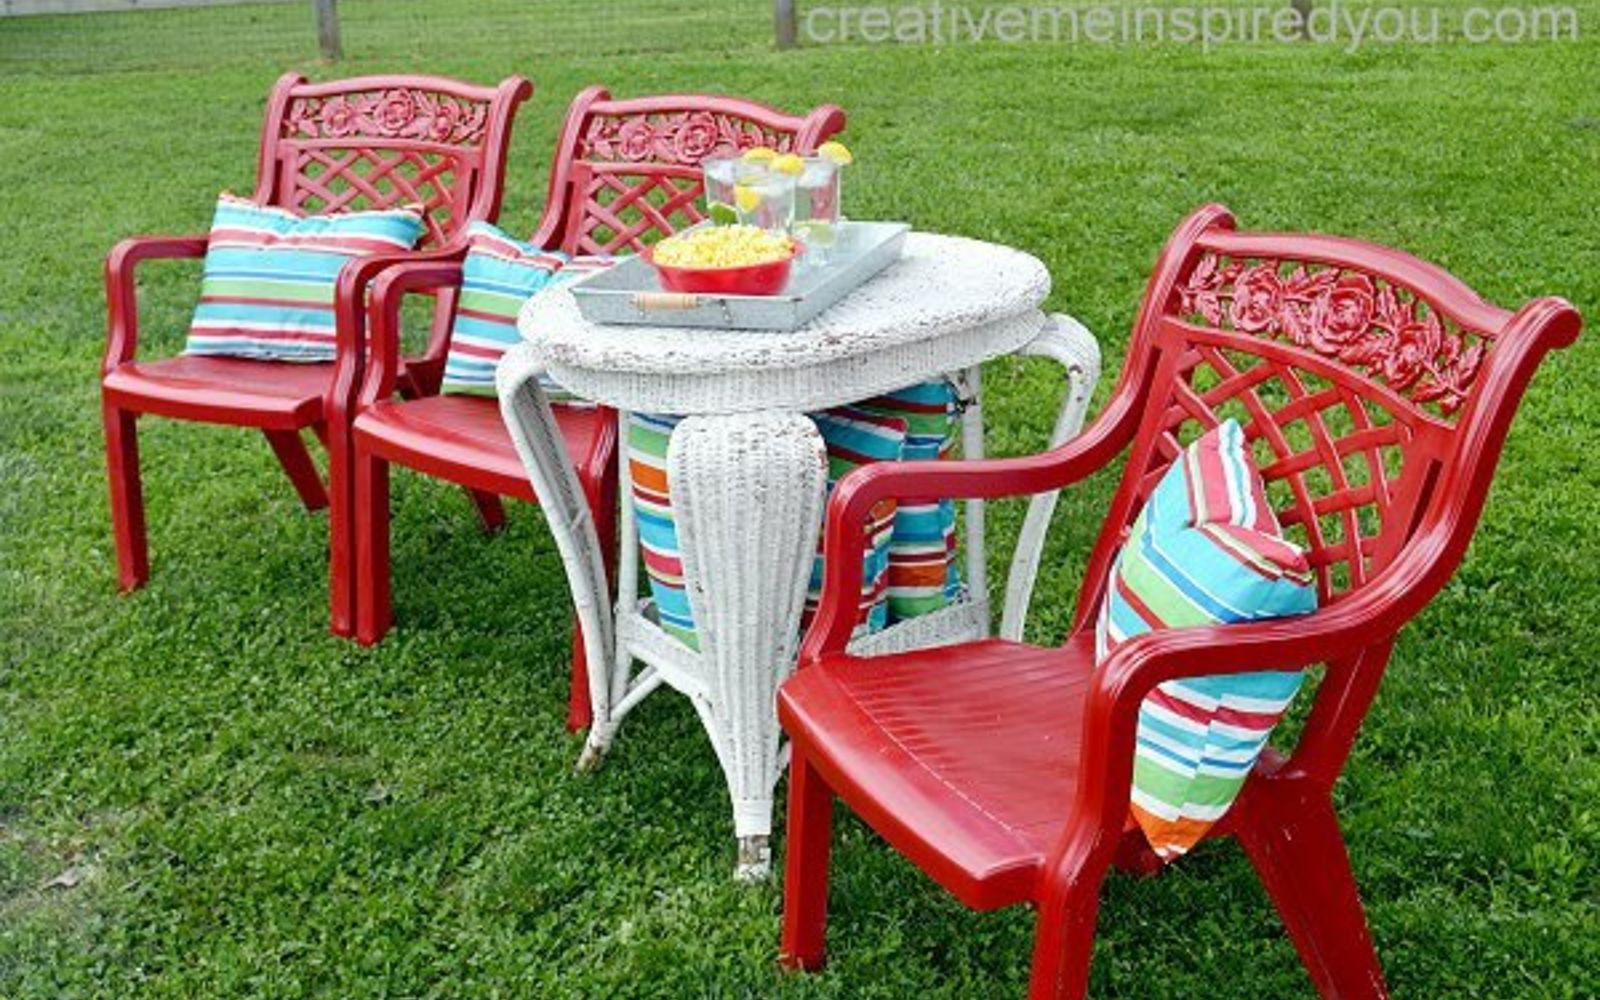 s 12 pool chair ideas we never would have thought of, Paint The Chairs A Bright Color